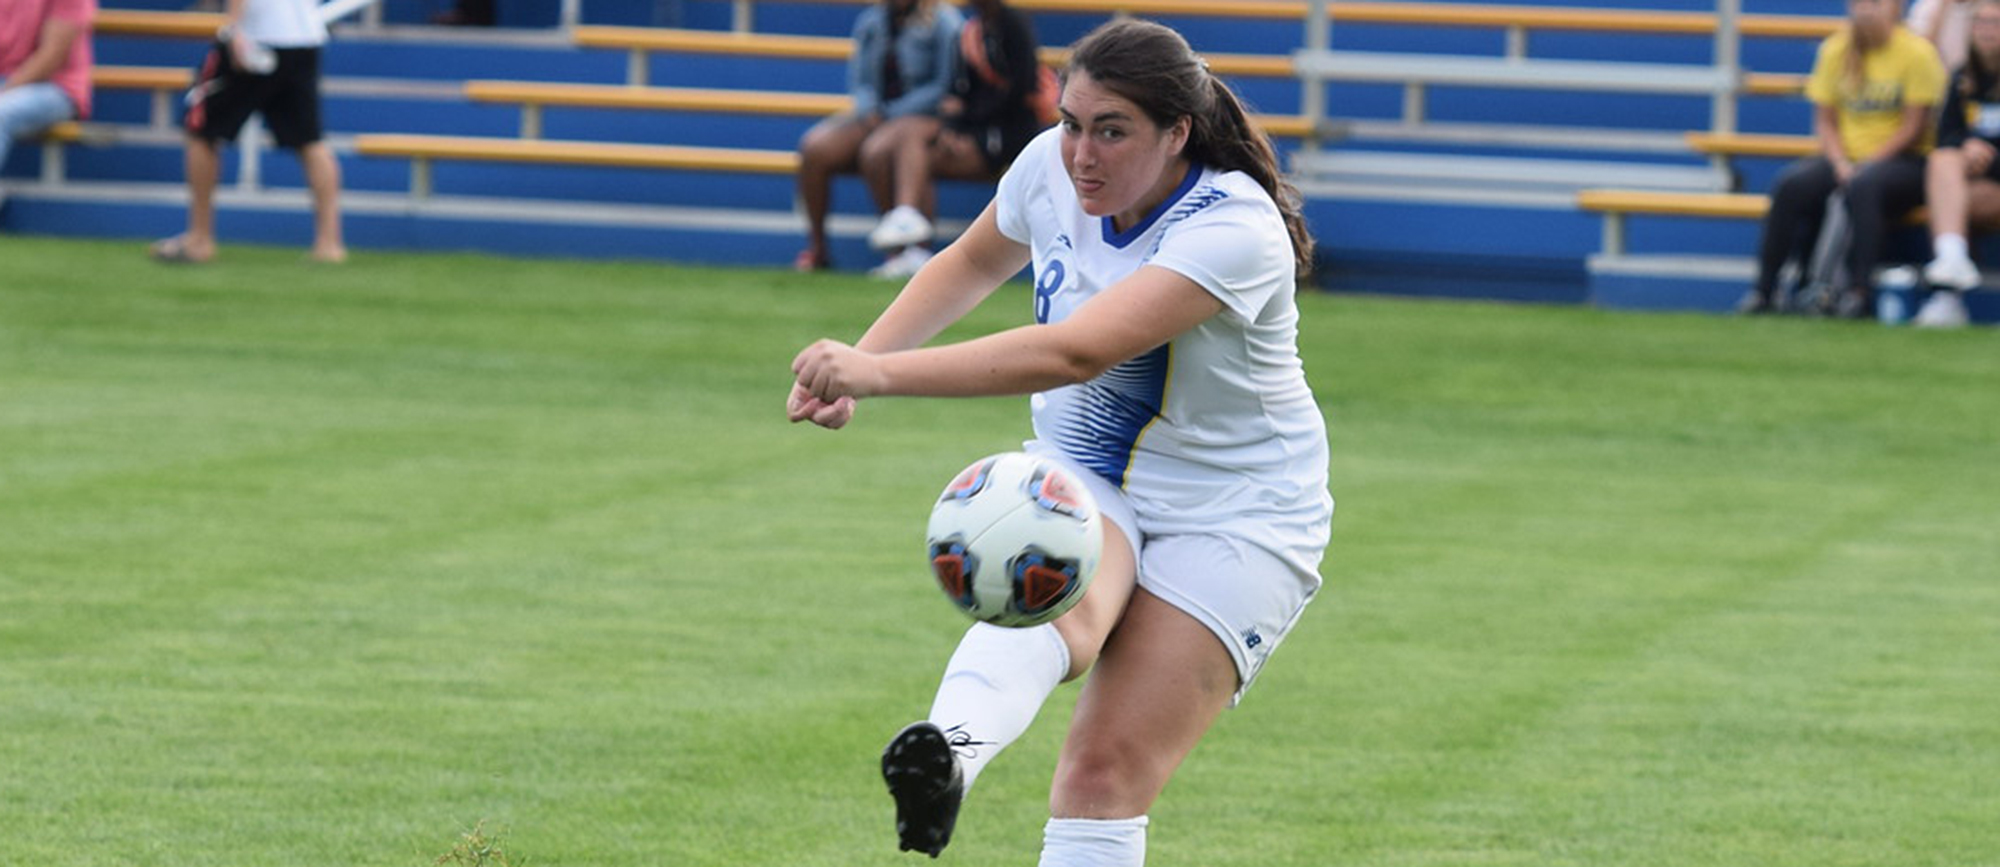 Bee Murphy scored on a corner kick in Western New England's season-opening 2-0 victory over Keene State on Saturday. (Photo by Rachael Margossian)